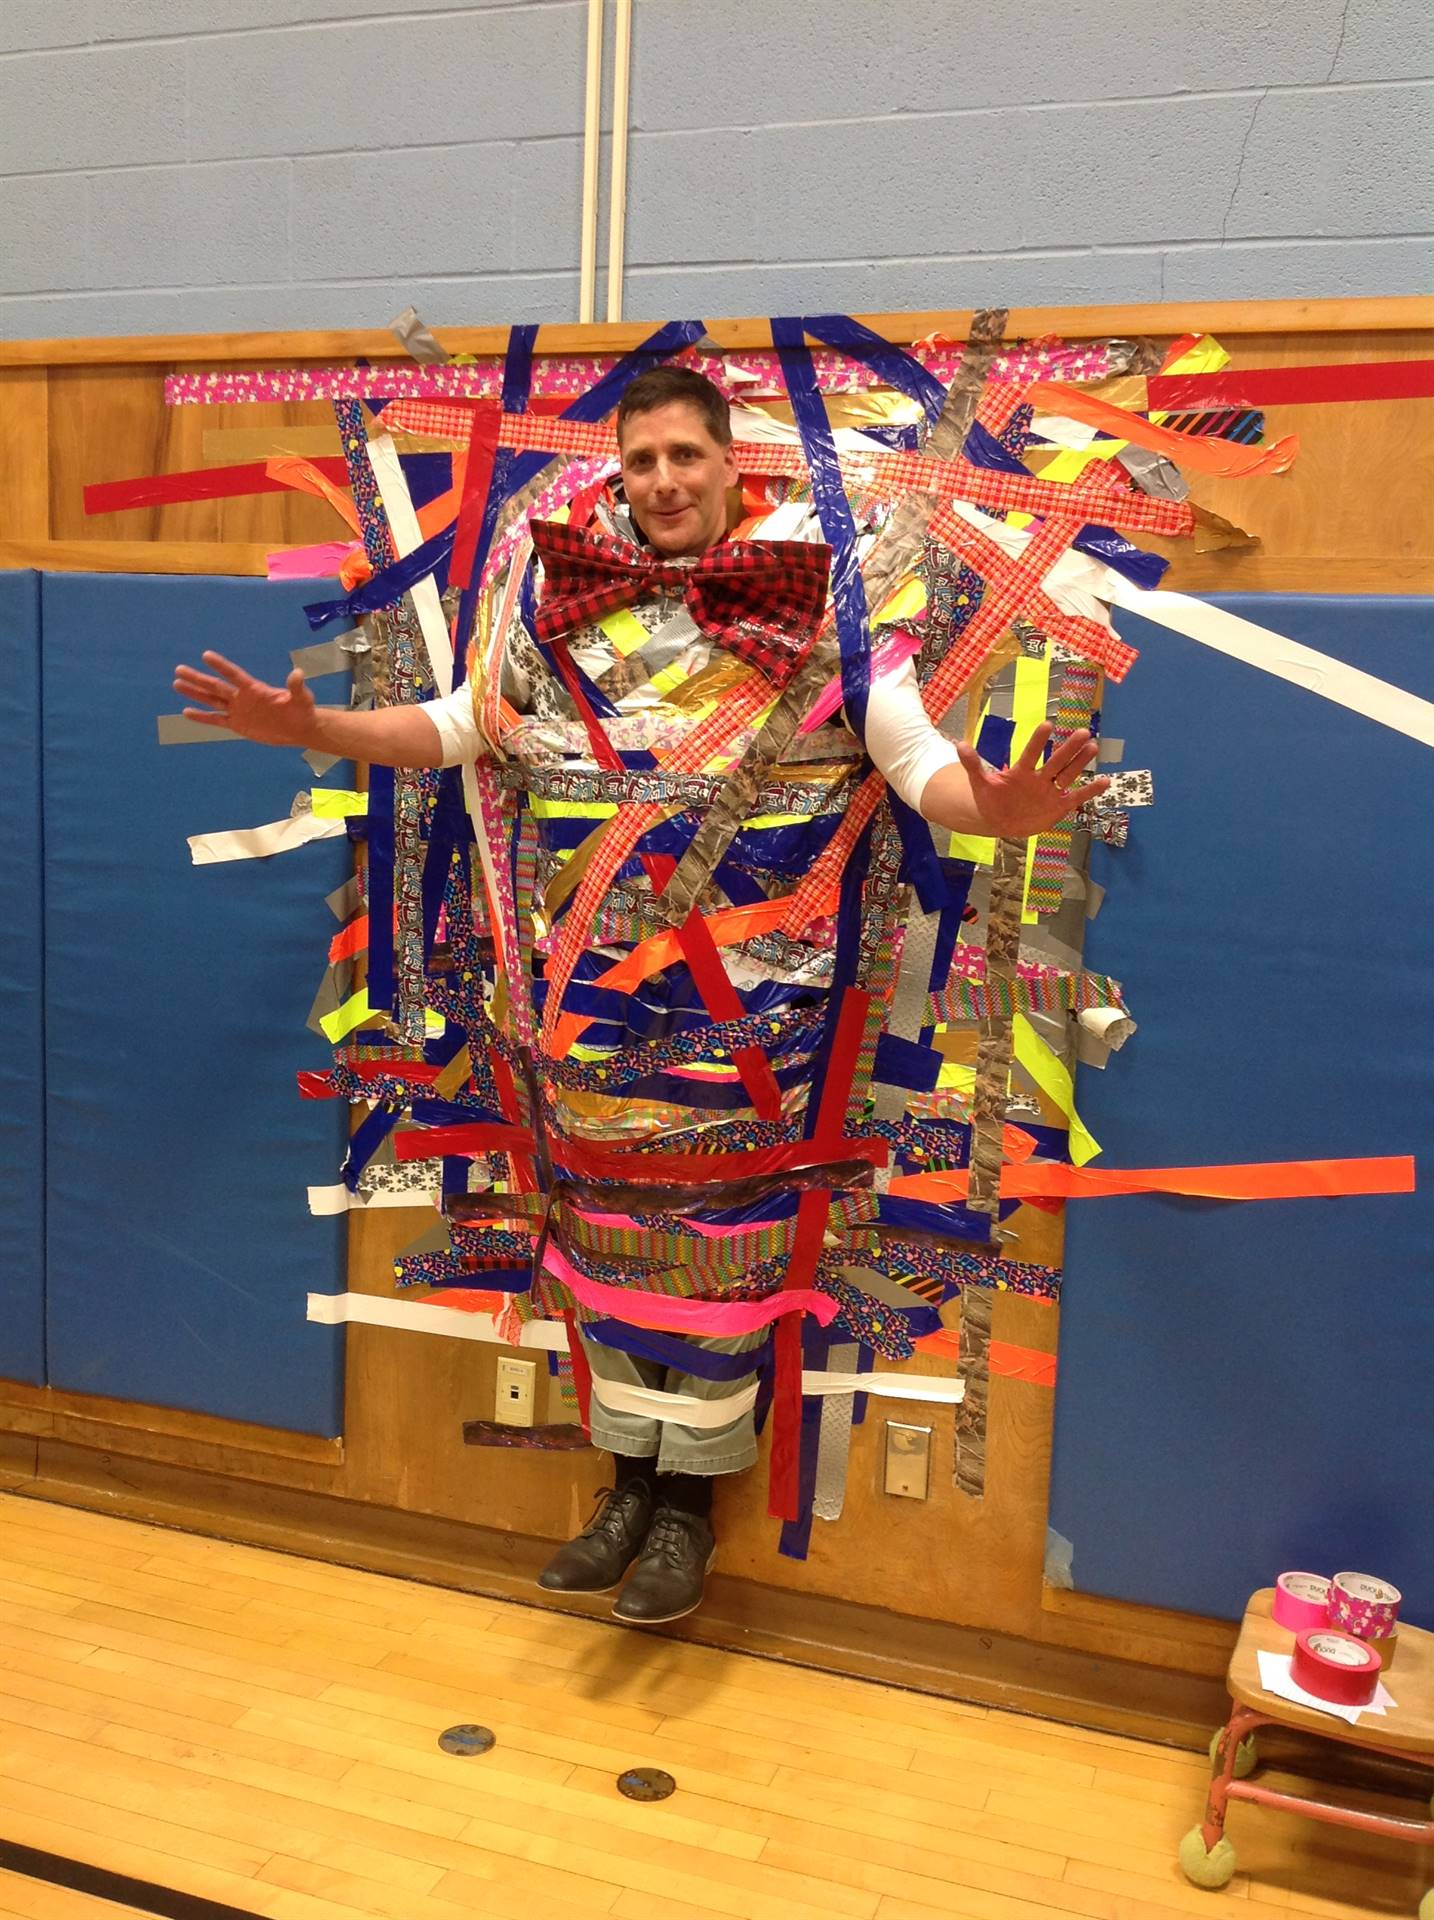 Principal Mr. Baskin duct-taped to the wall following hurricane-relief fundraising efforts